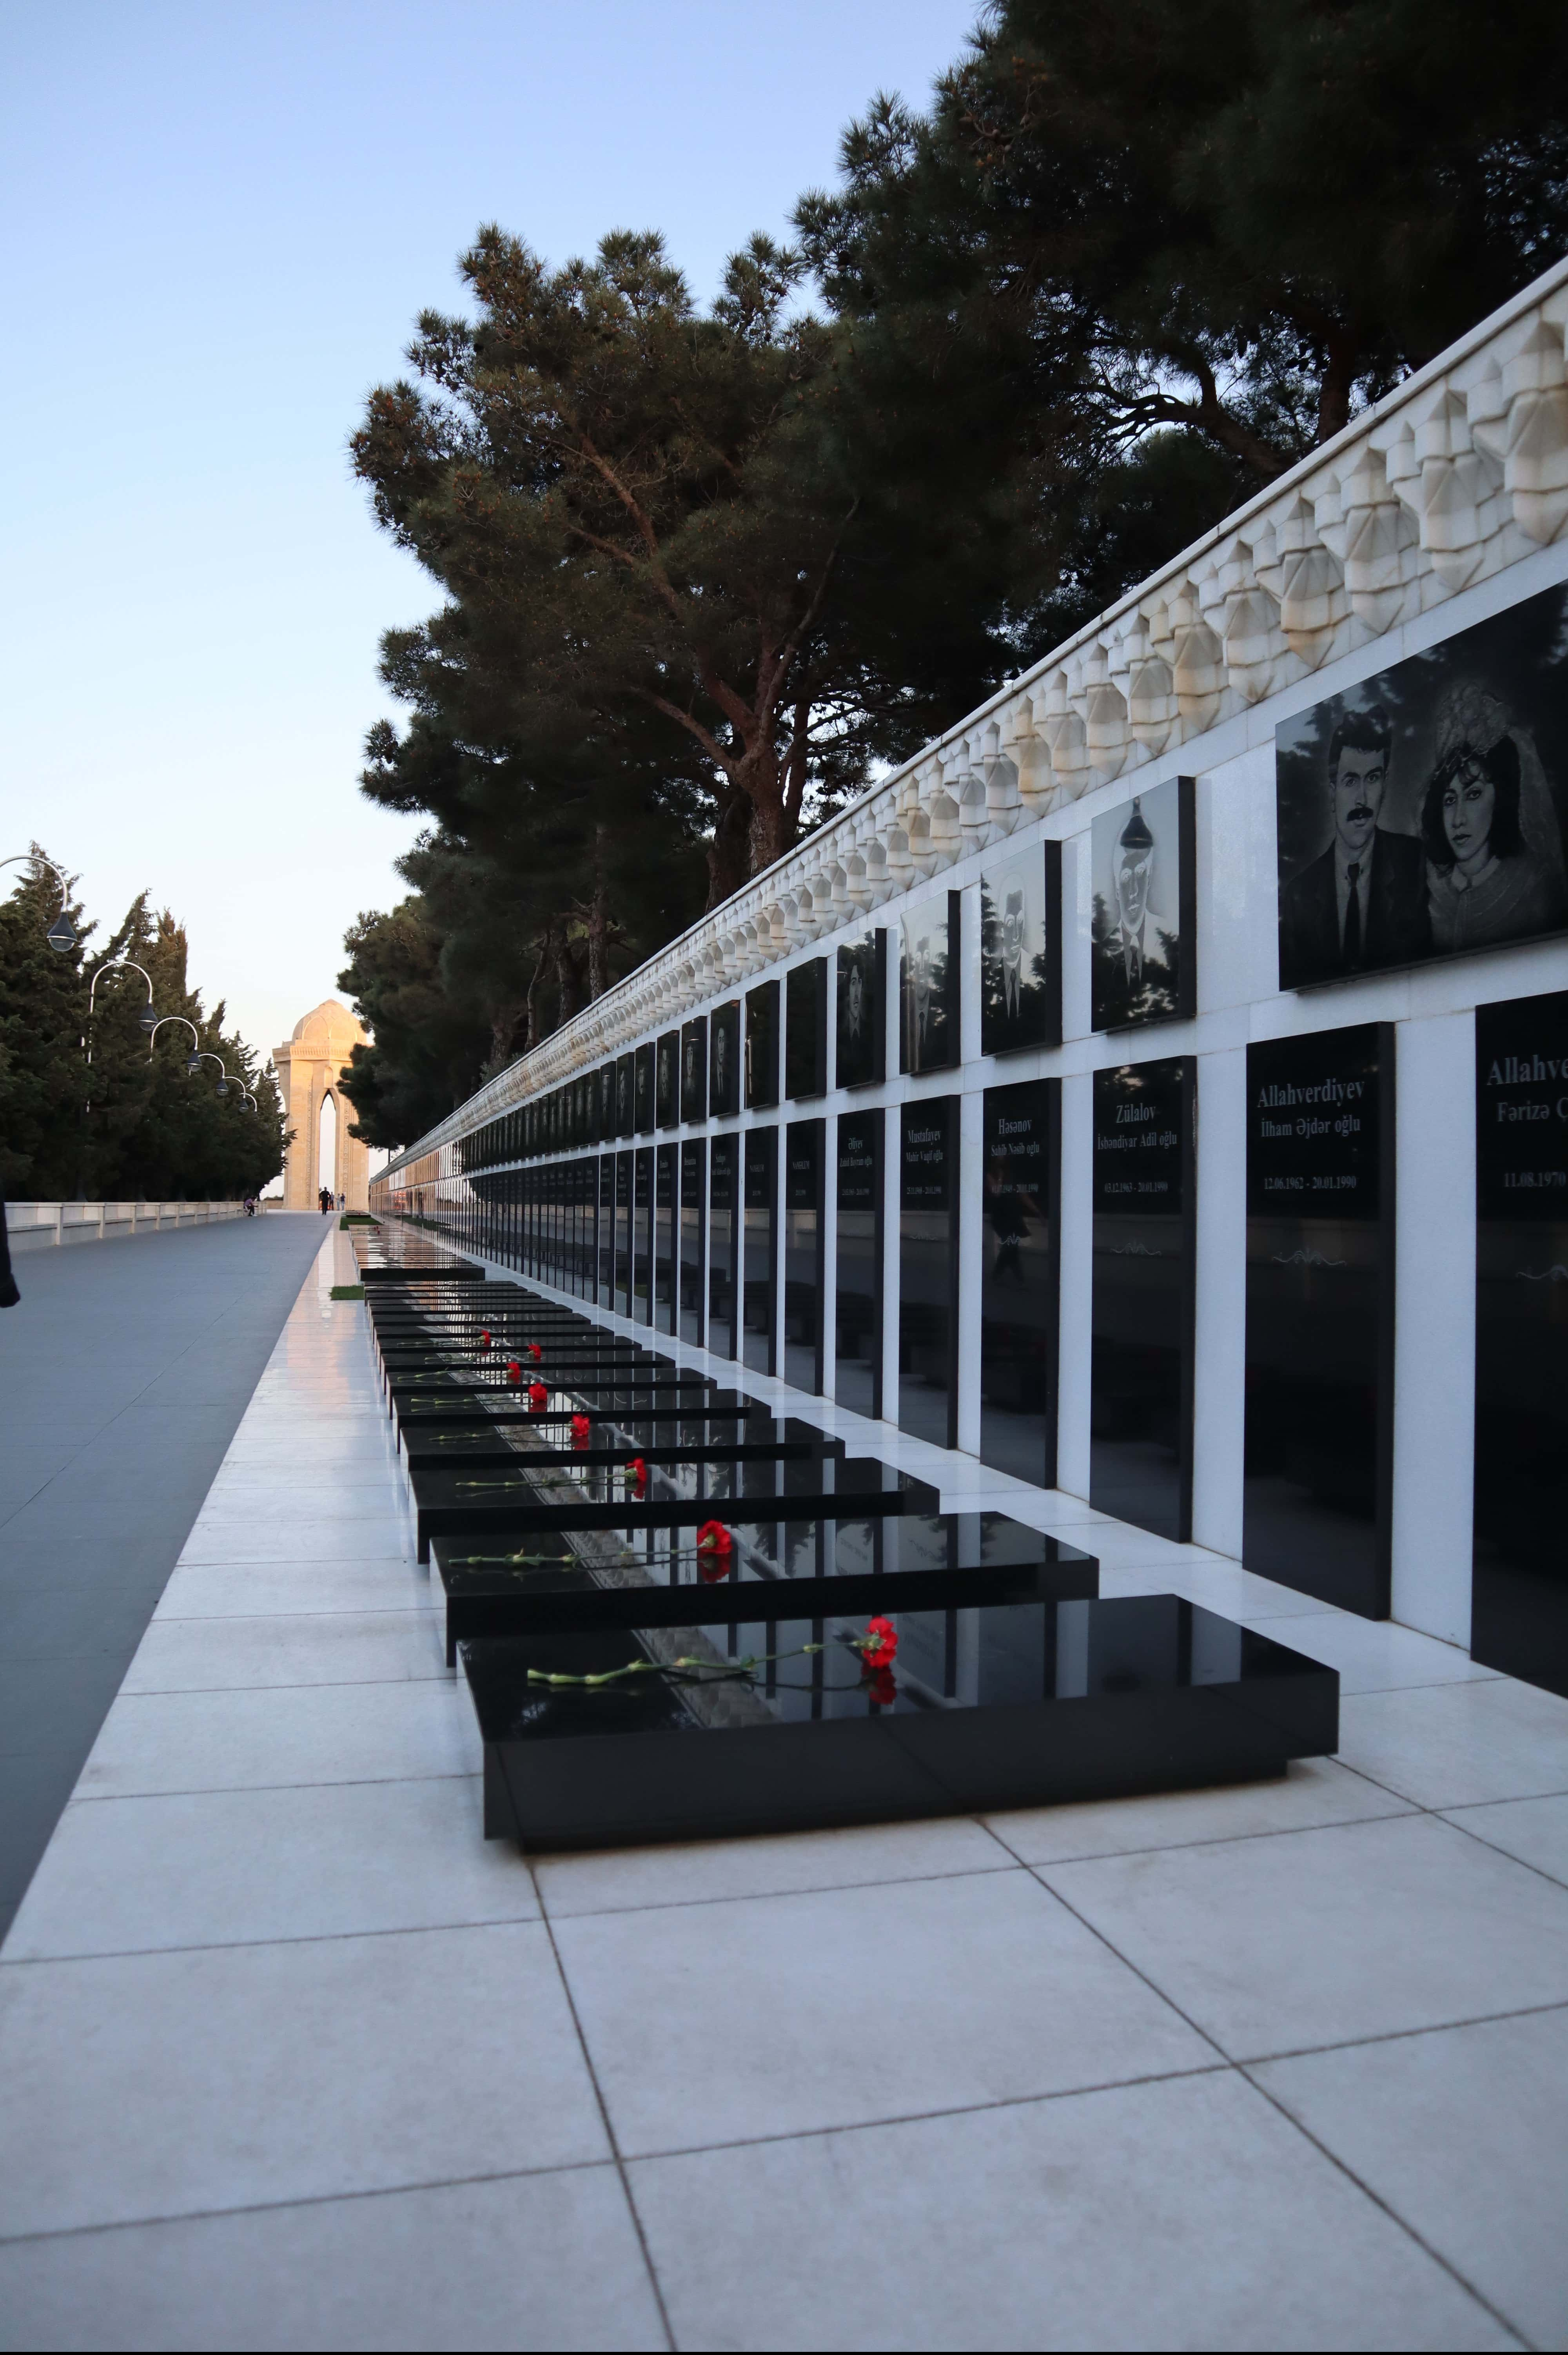 The tombs of those killed in Baku in January 1990; (Extreme right) Fariza and Ilham Allahverdiyev